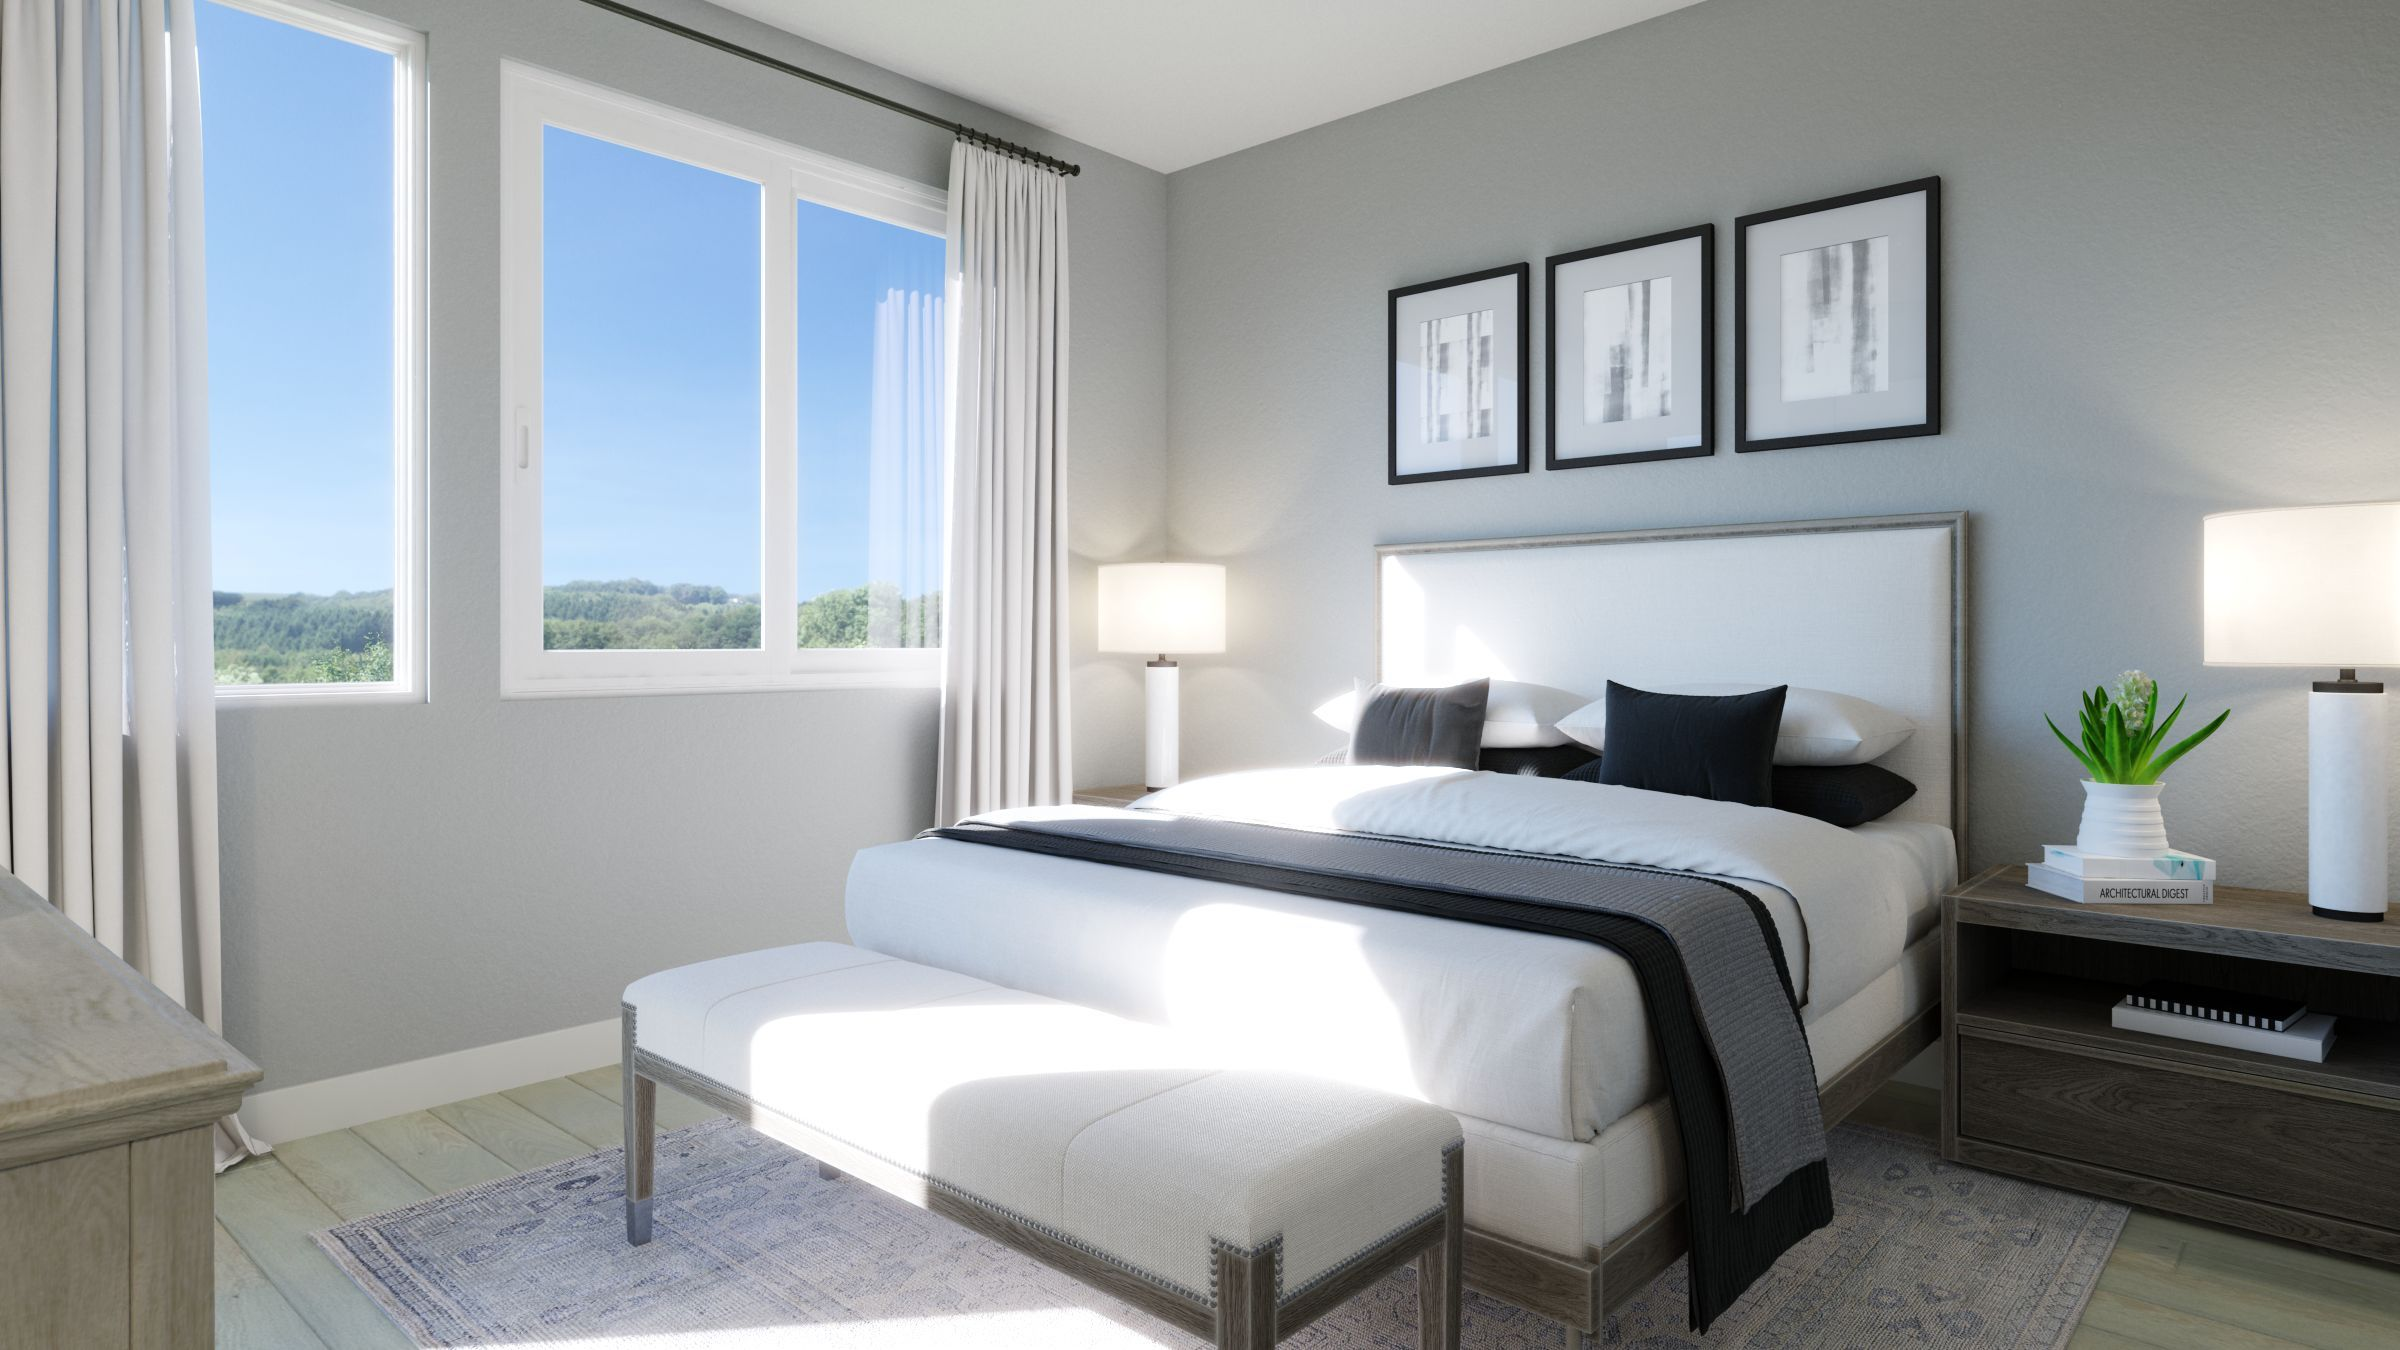 Bedroom featured in the Residence 1 By G3 Urban in Los Angeles, CA